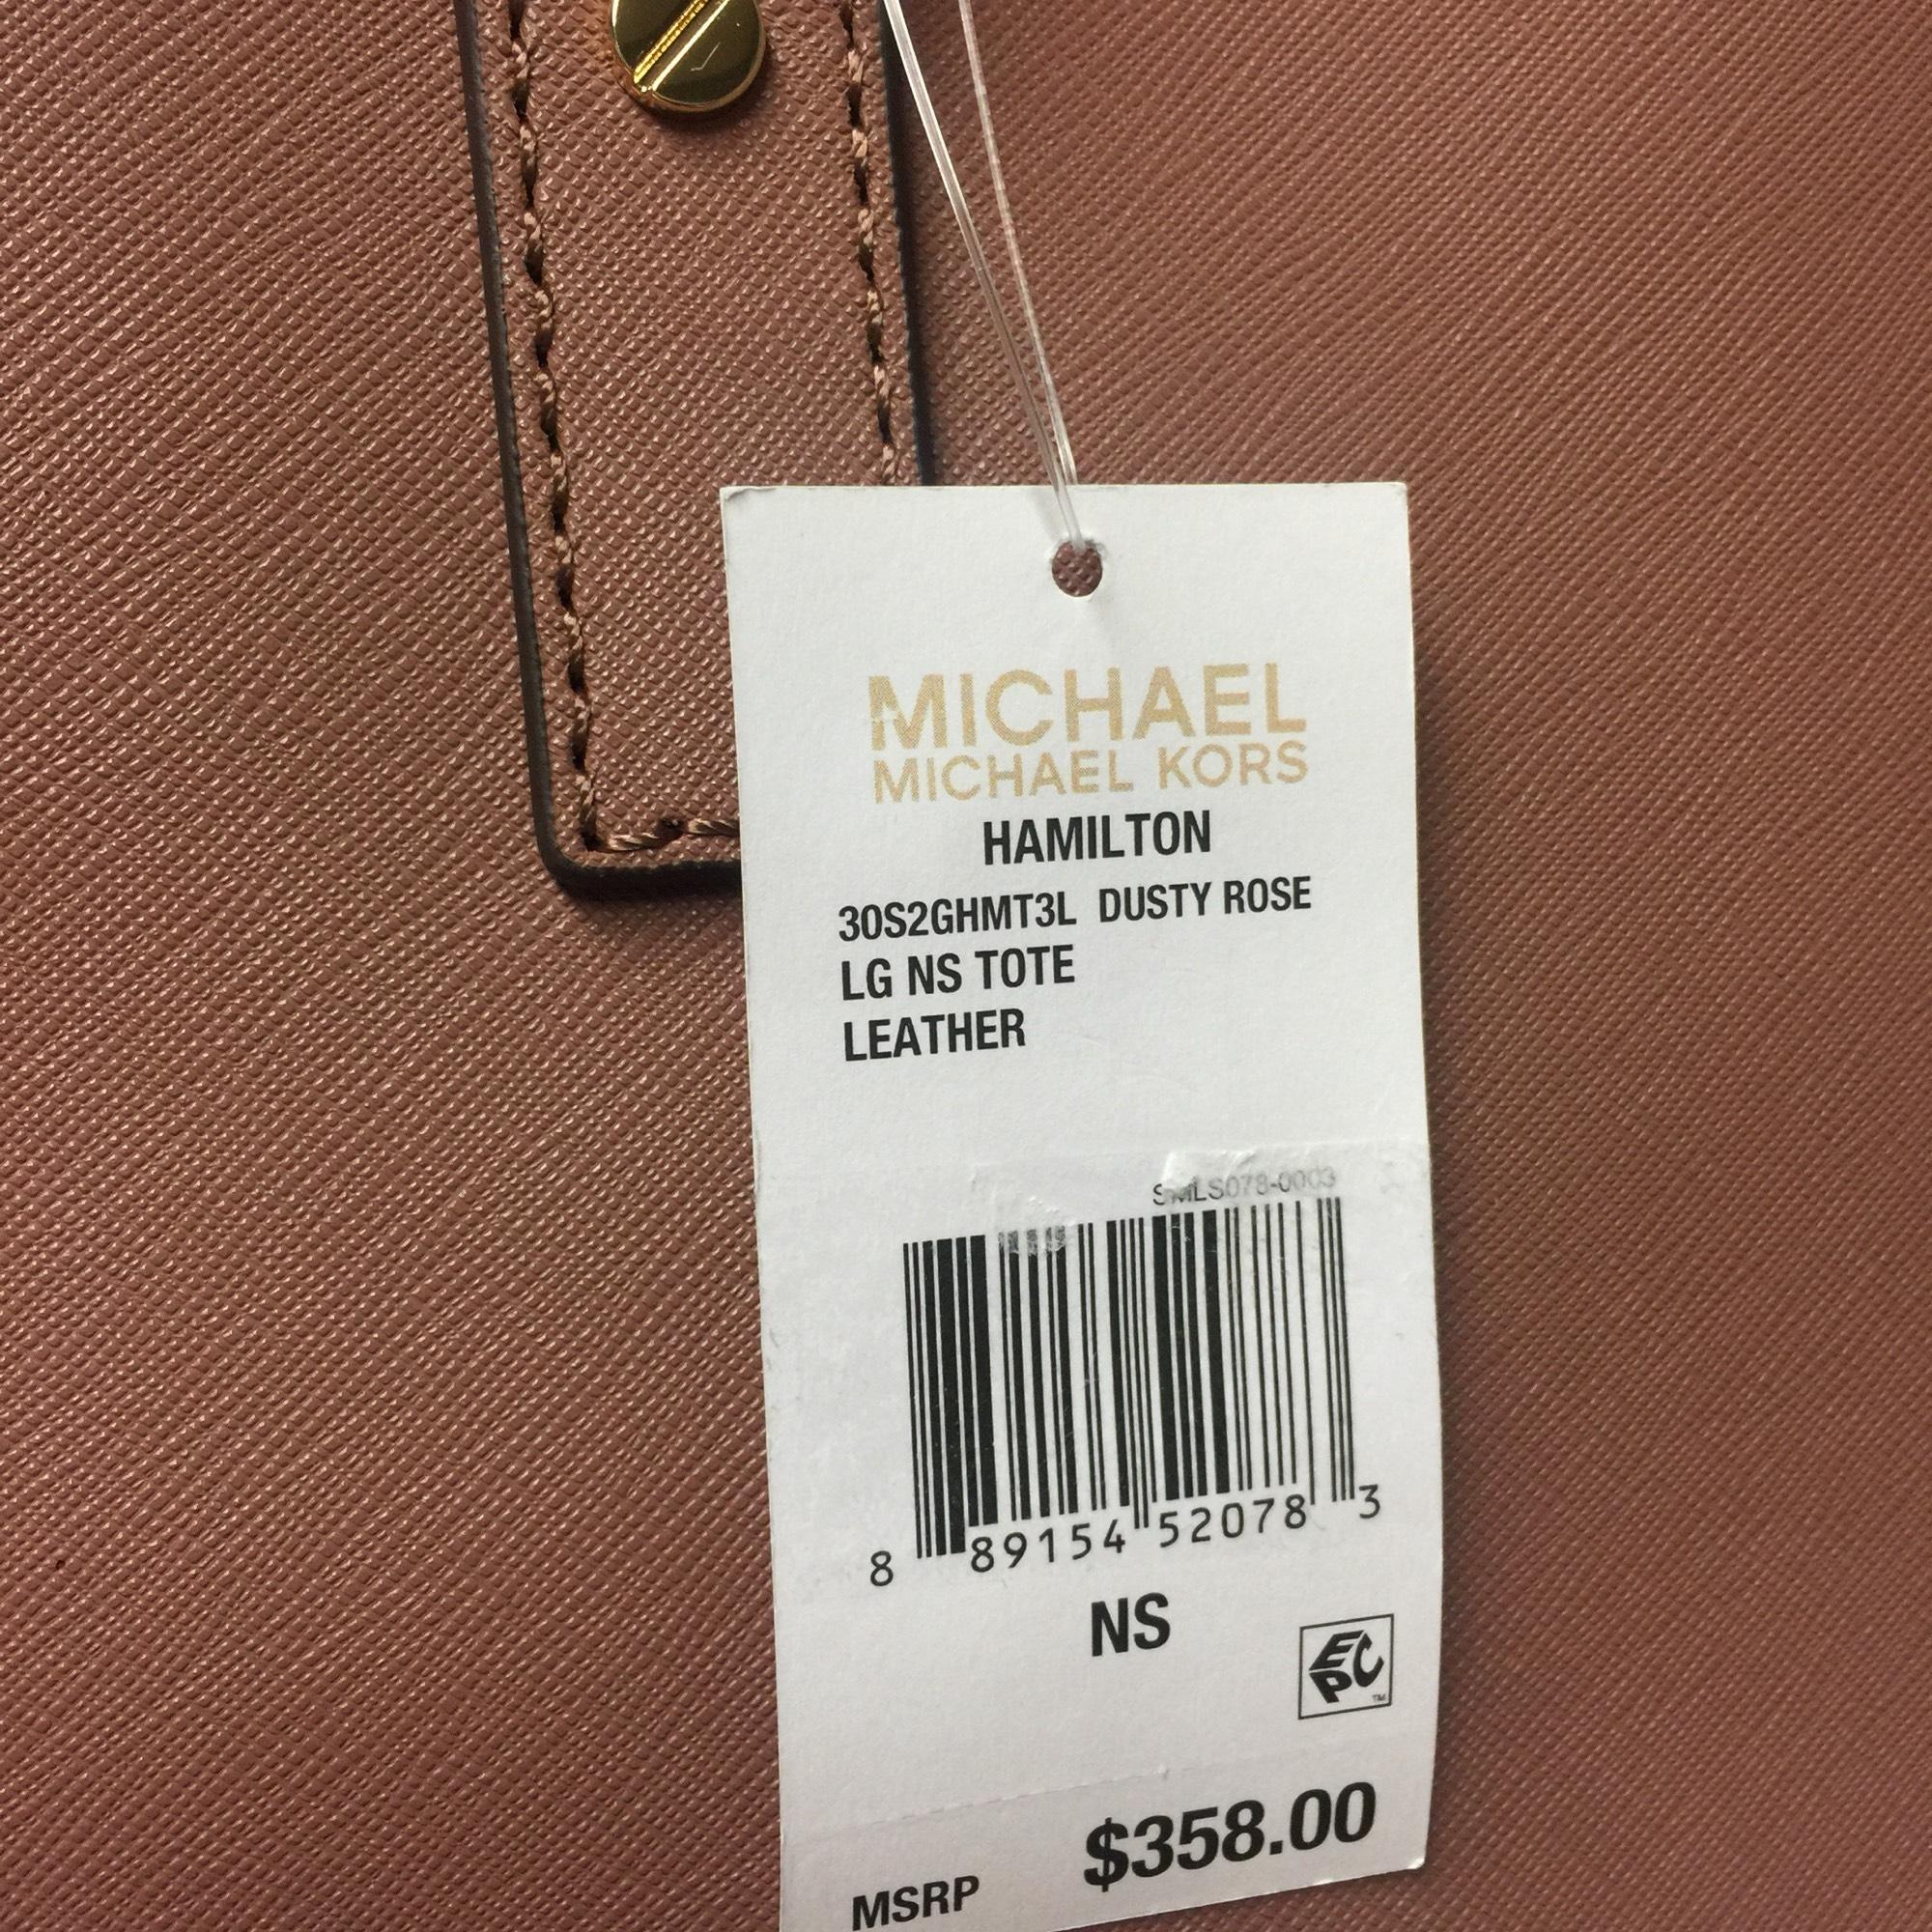 fe4ca843bff5a1 discount selma saffiano leather medium satchel michael kors 11ad7 db113;  where can i buy michael michael kors hamilton ns north south large pink tote  in ...